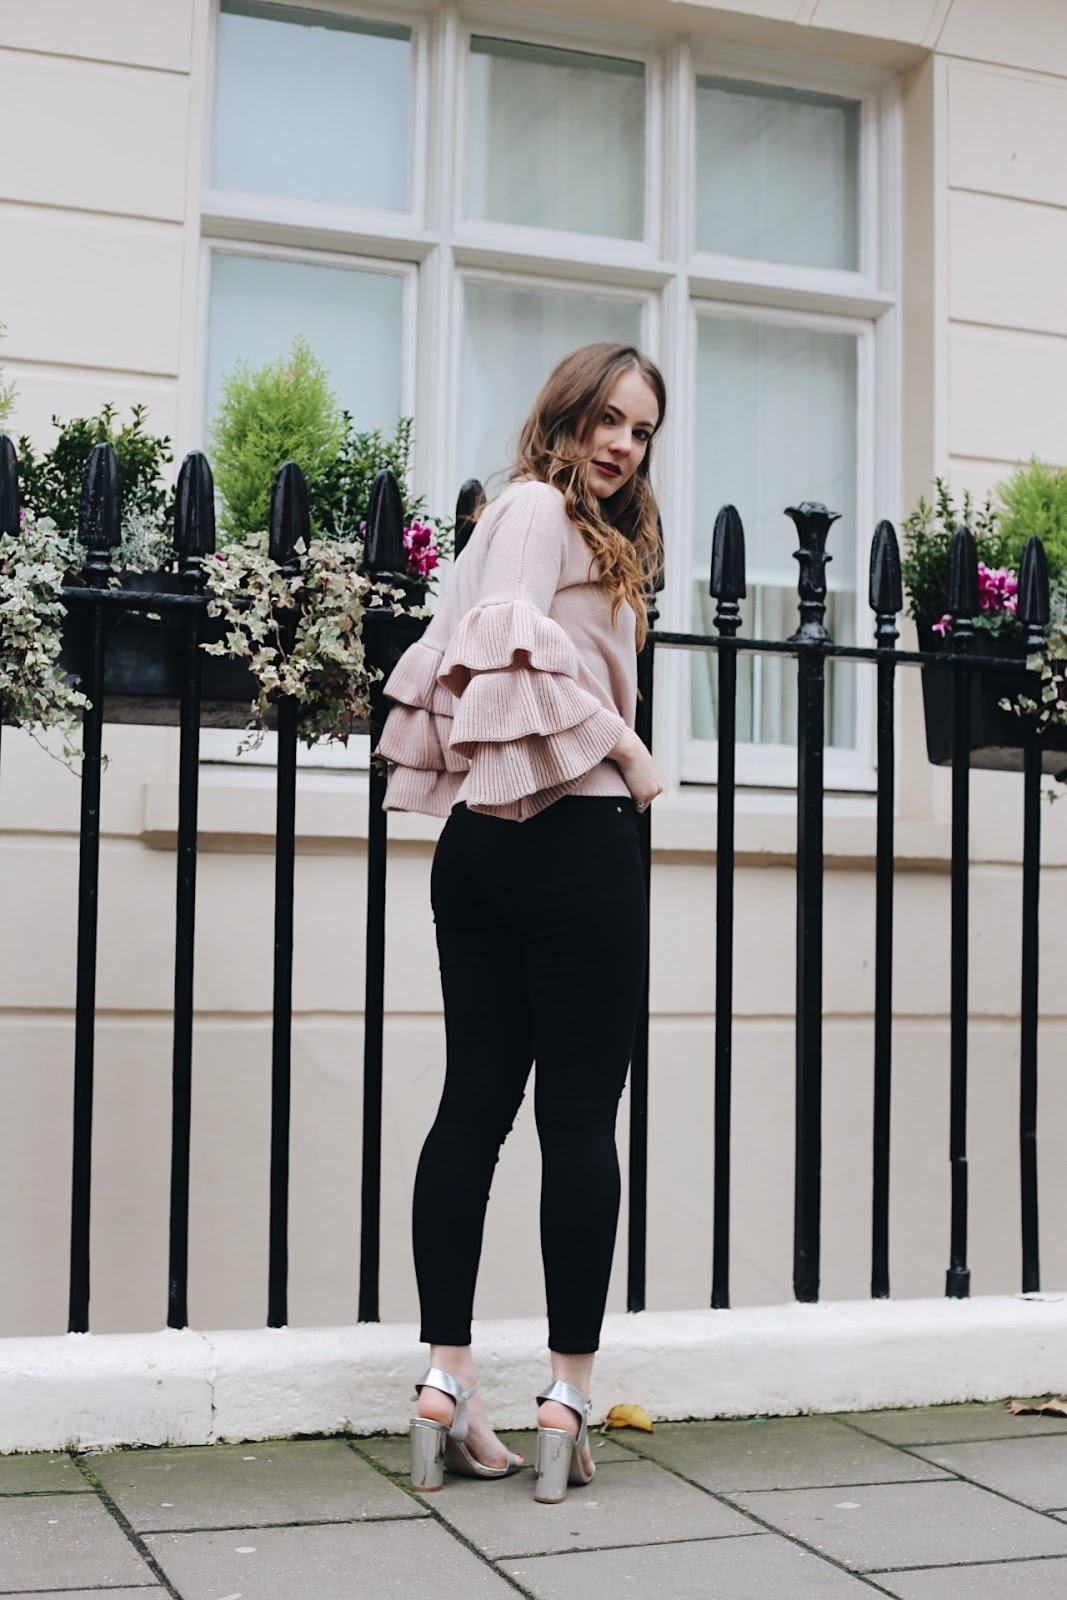 self confidence, confidence, body image, vanity vs confidence, what is self confidence, shein jumper, shein, shein ruffled jumper, shein ruffled pink jumper, pink ruffles